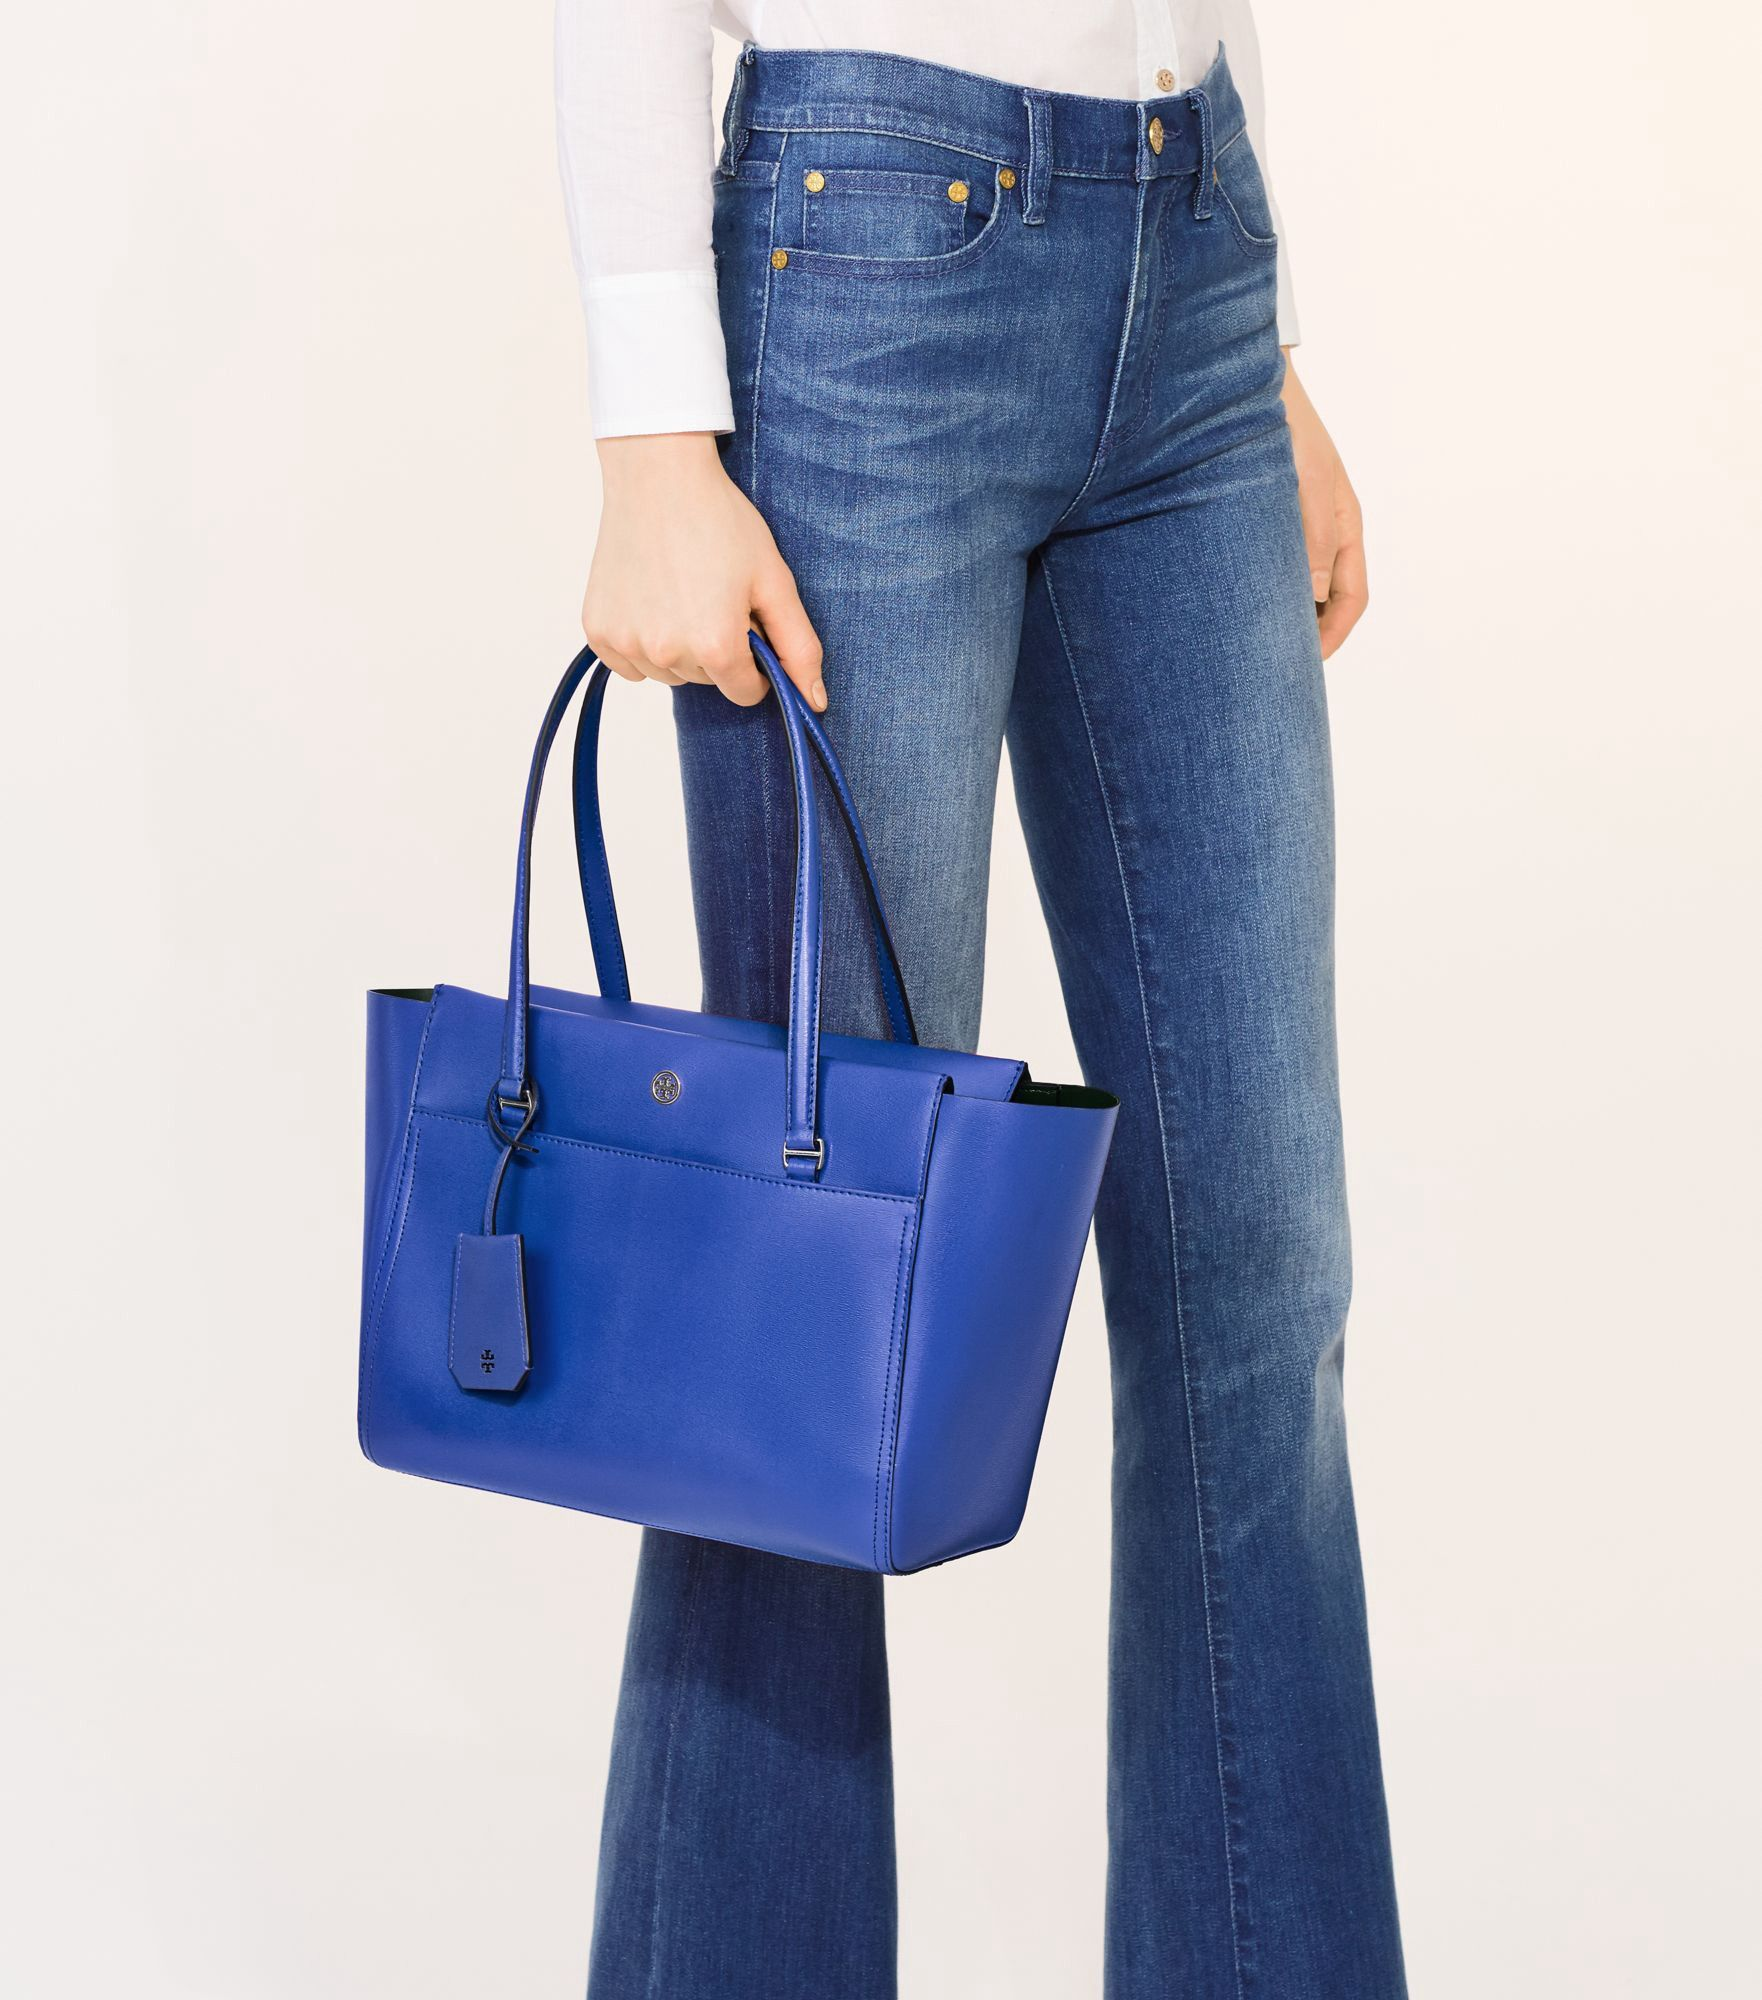 15be39f41e6 TORY BURCH PARKER SMALL TOTE.  toryburch  bags  shoulder bags  hand bags   leather  tote